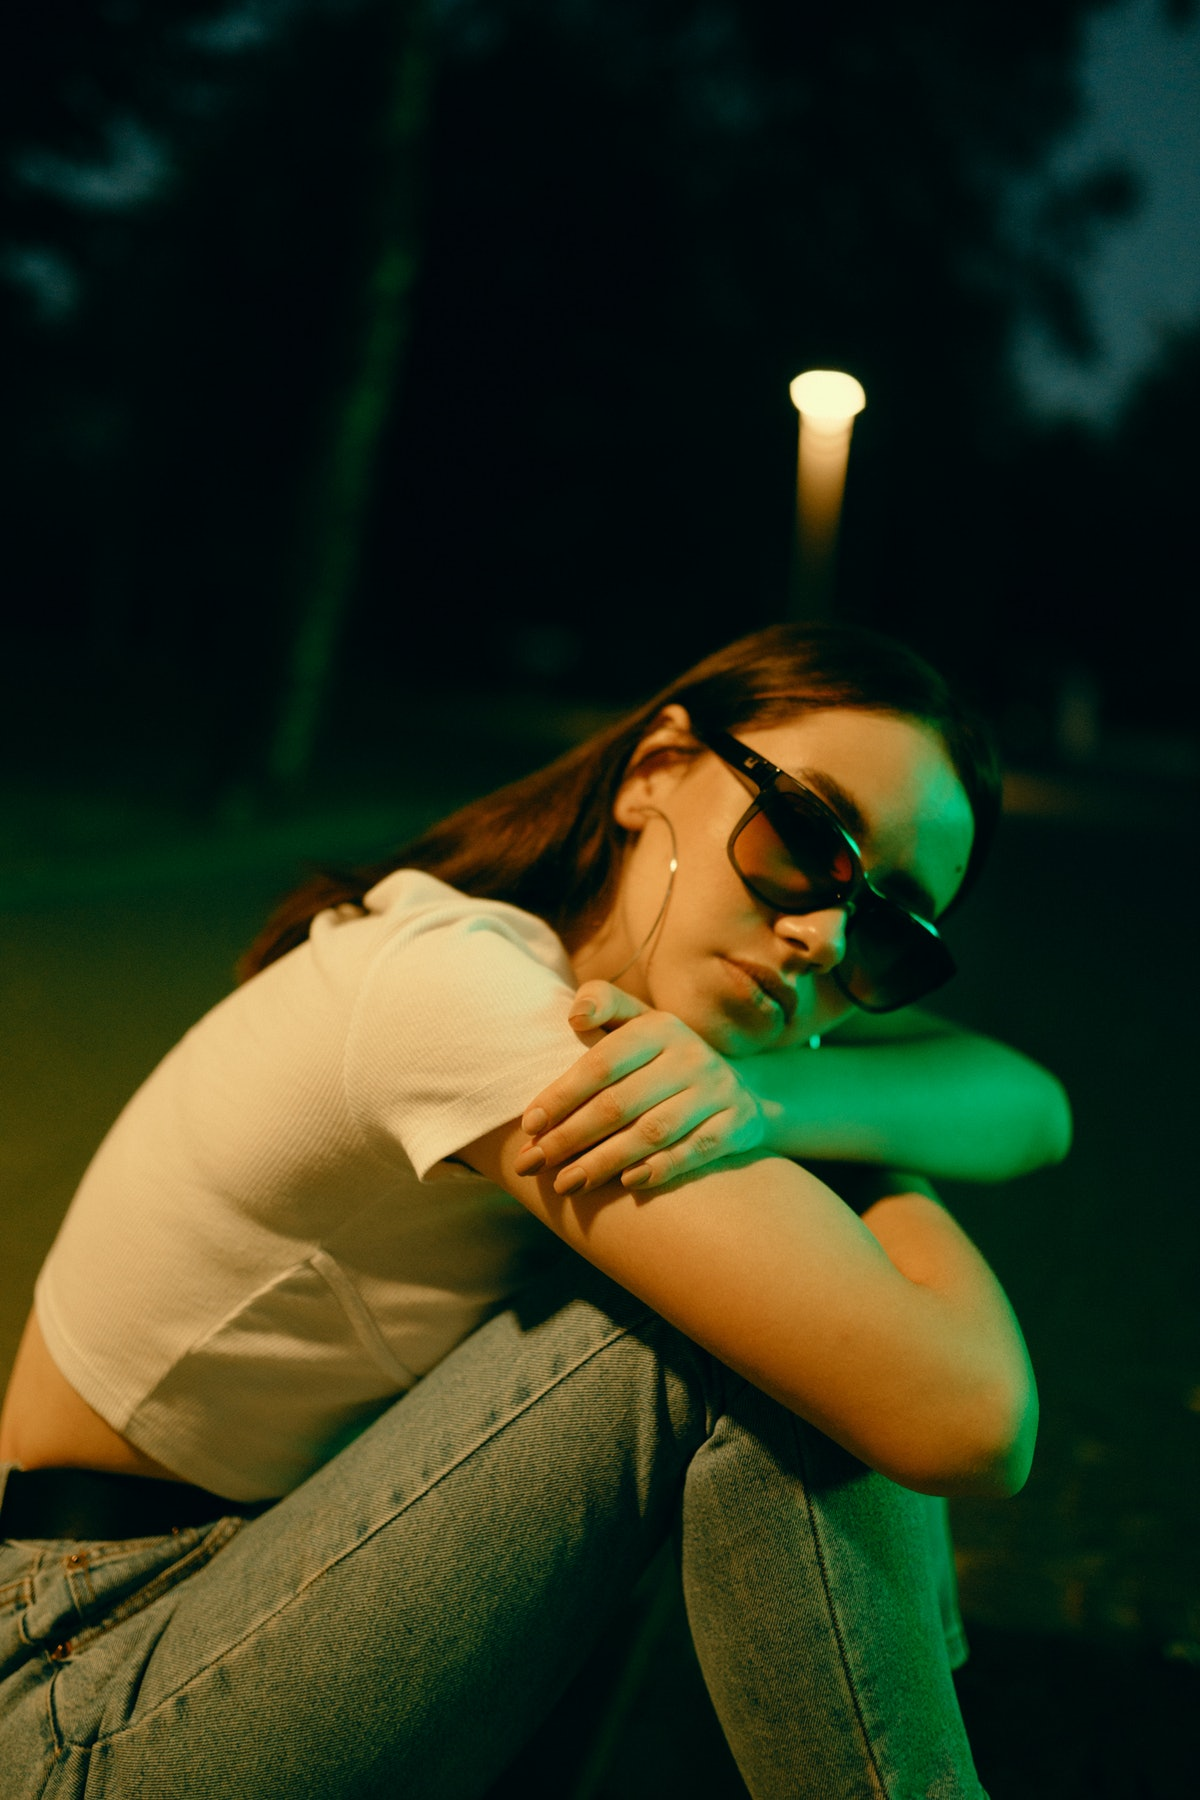 Young woman with sunglasses during Uranus retrograde 2021.